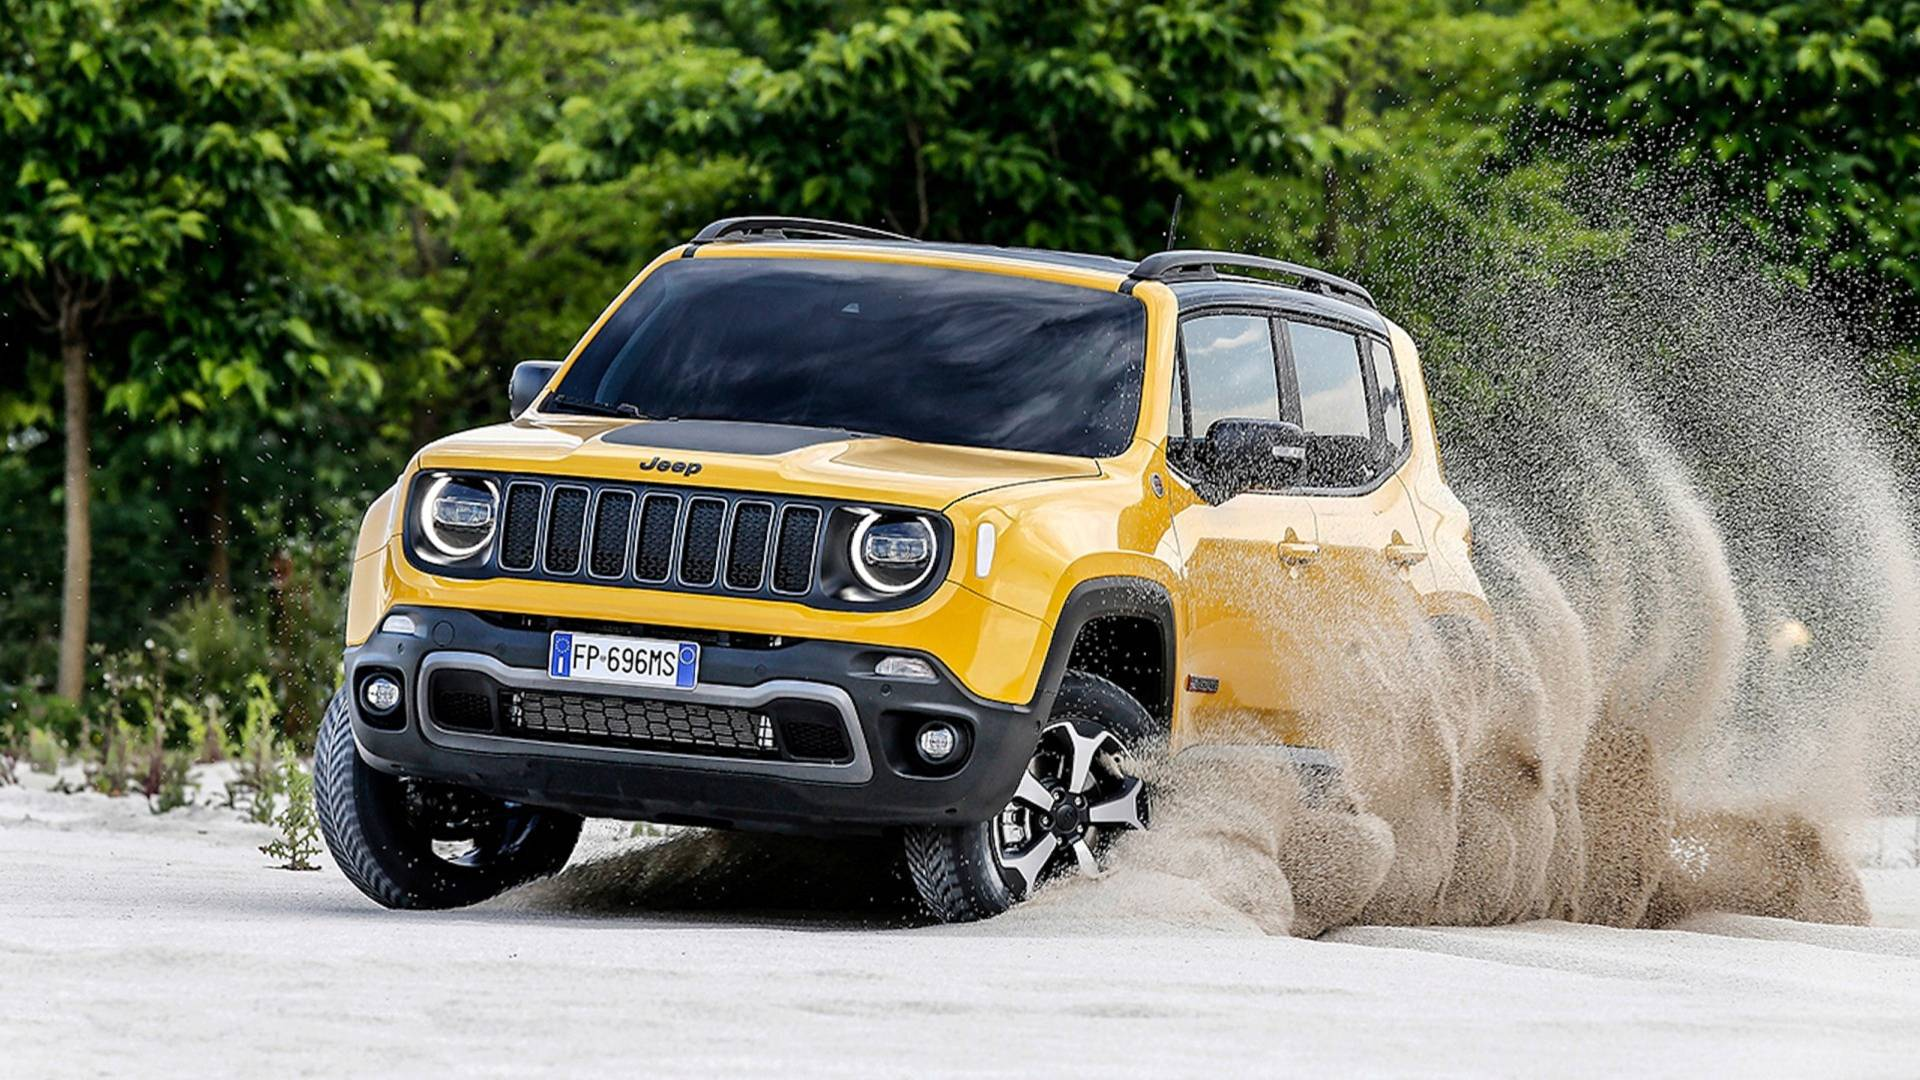 Nuova Jeep Renegade 2019 >> 2019 Jeep Renegade Going On Sale In Europe In September - autoevolution